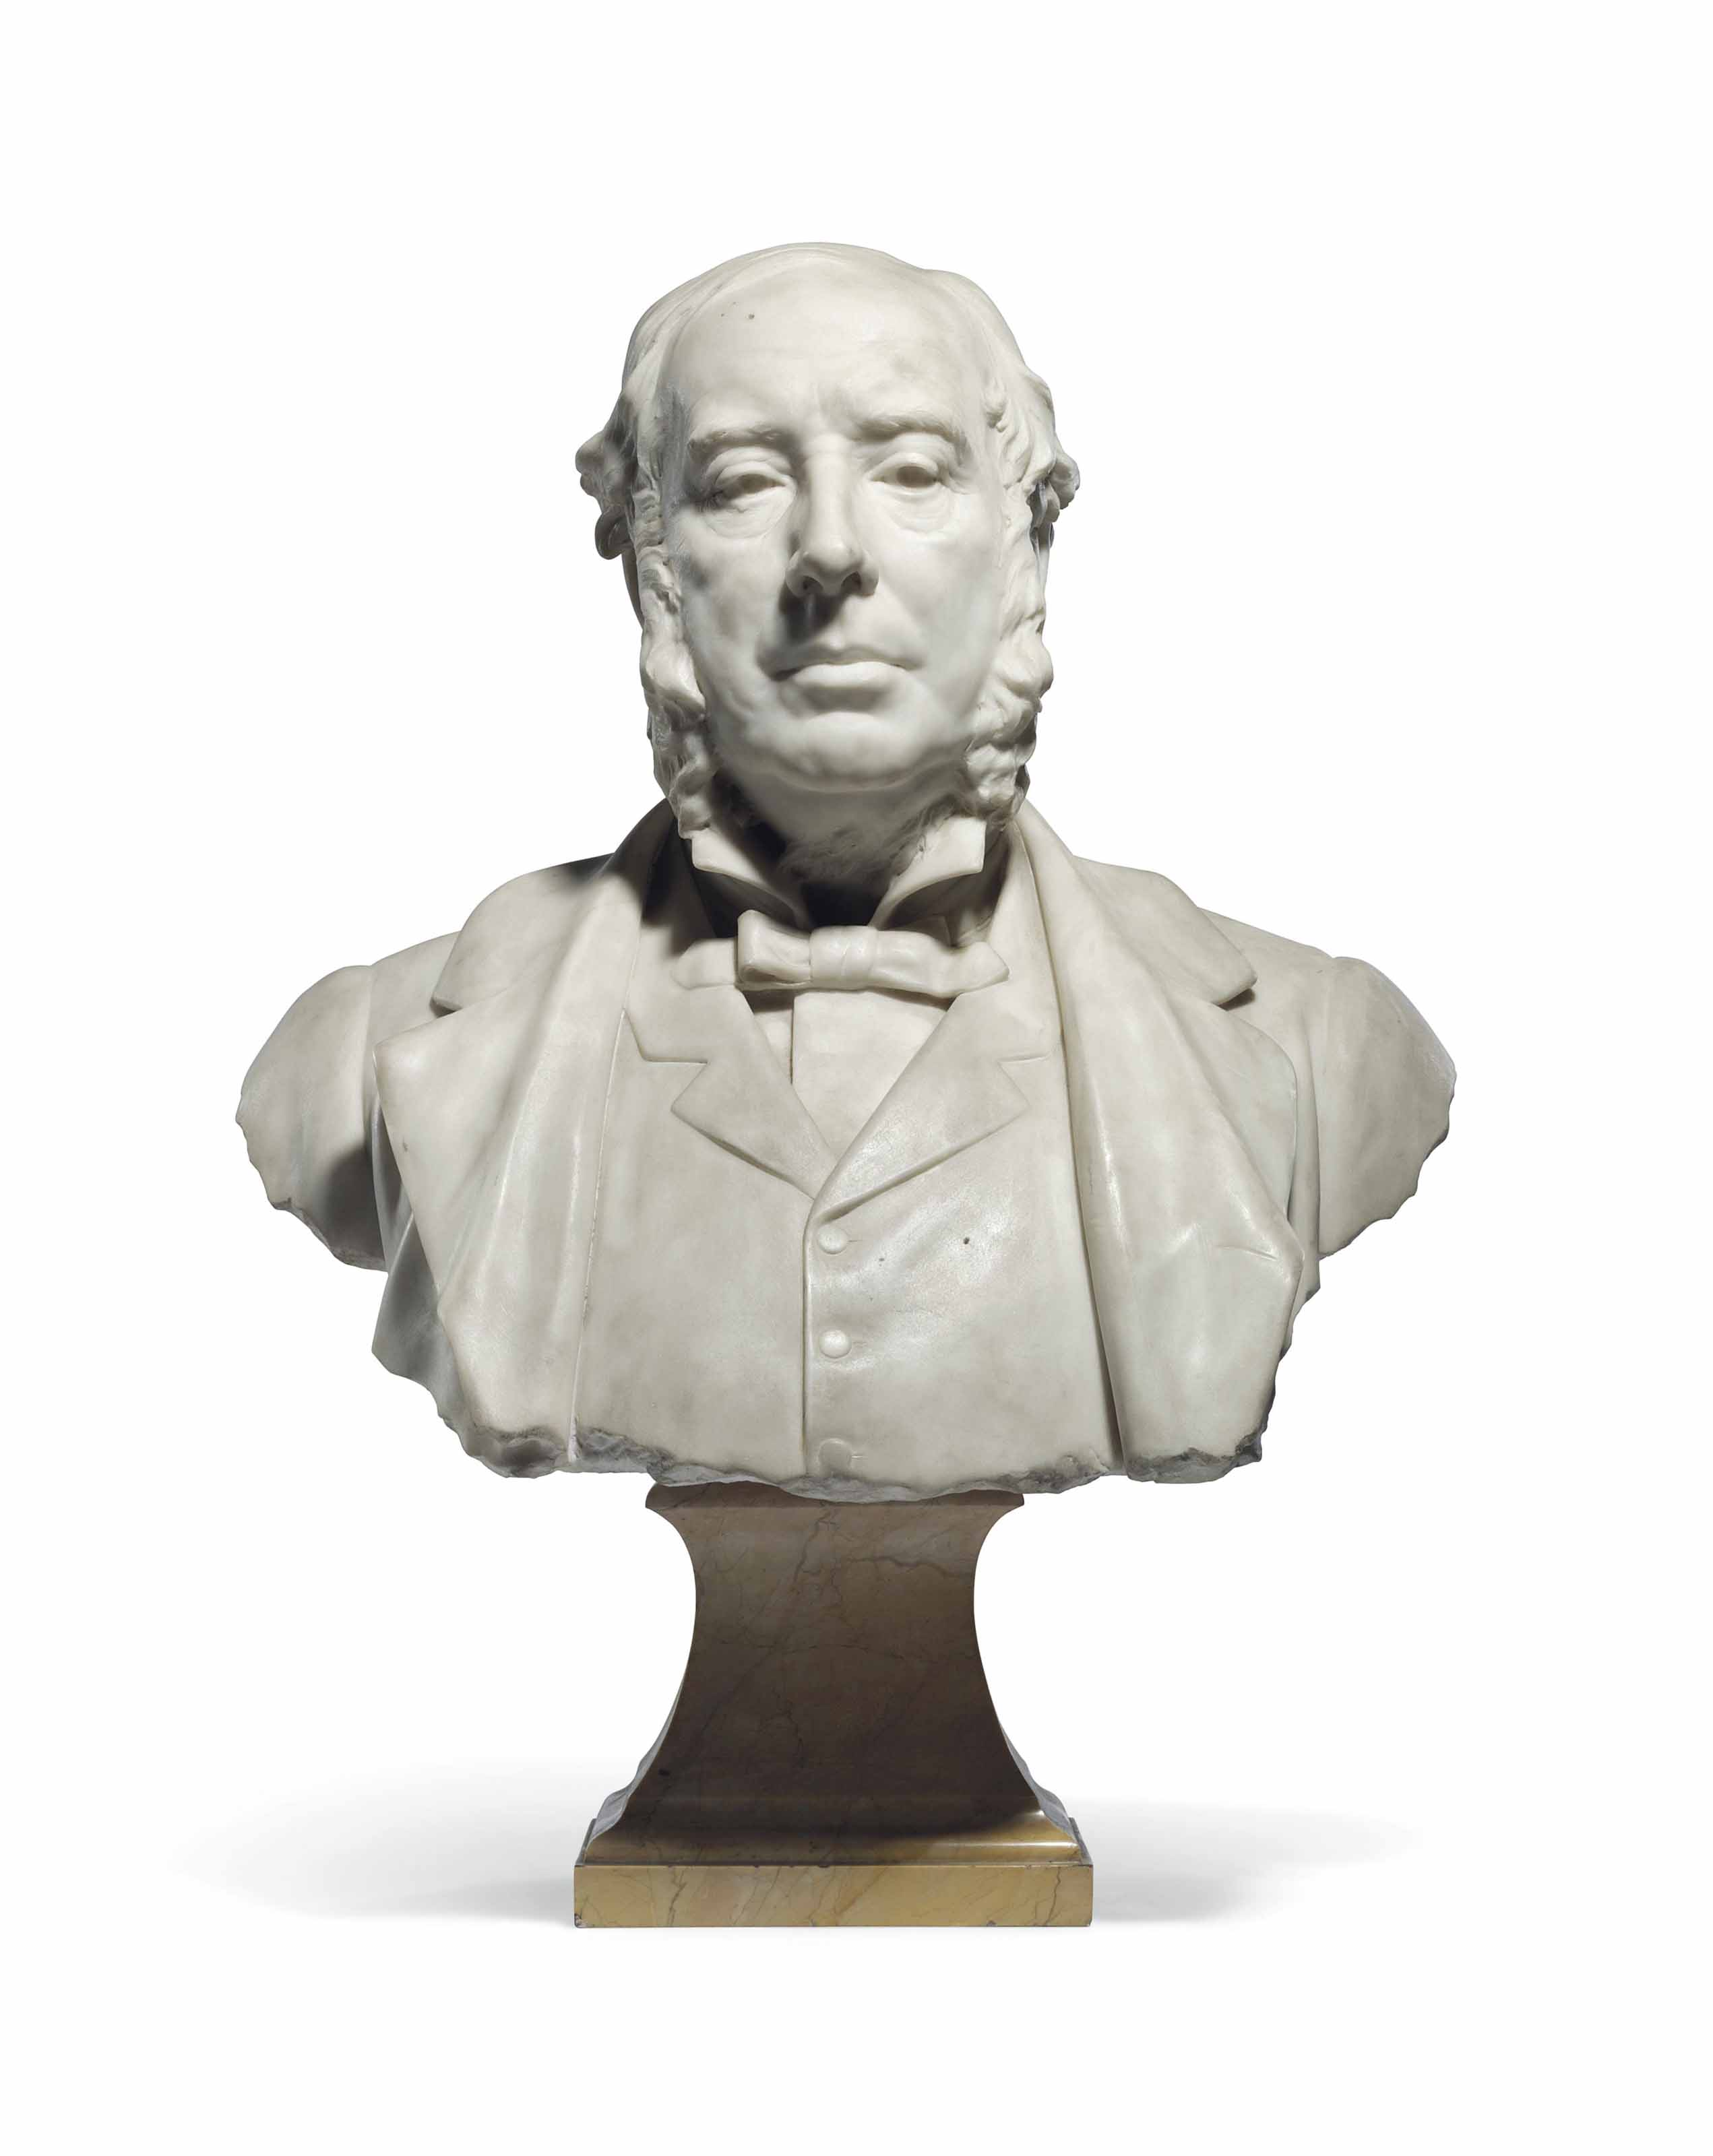 Portrait bust of Sir William Agnew, 1st Bt. (1825-1910)